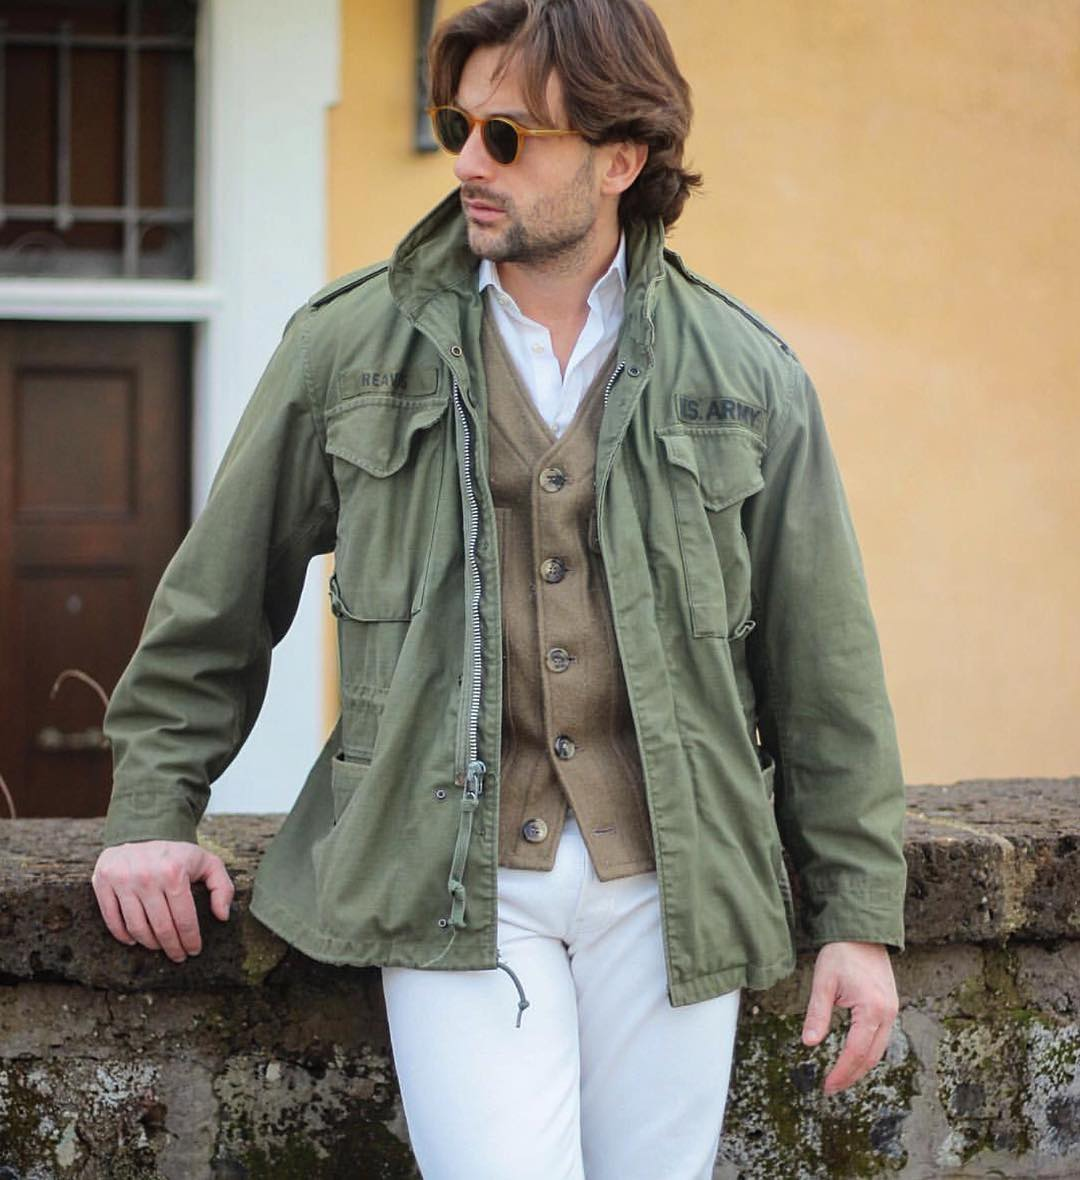 40 Ways To Style Military Clothing A Show Of Patriotism And Fashion